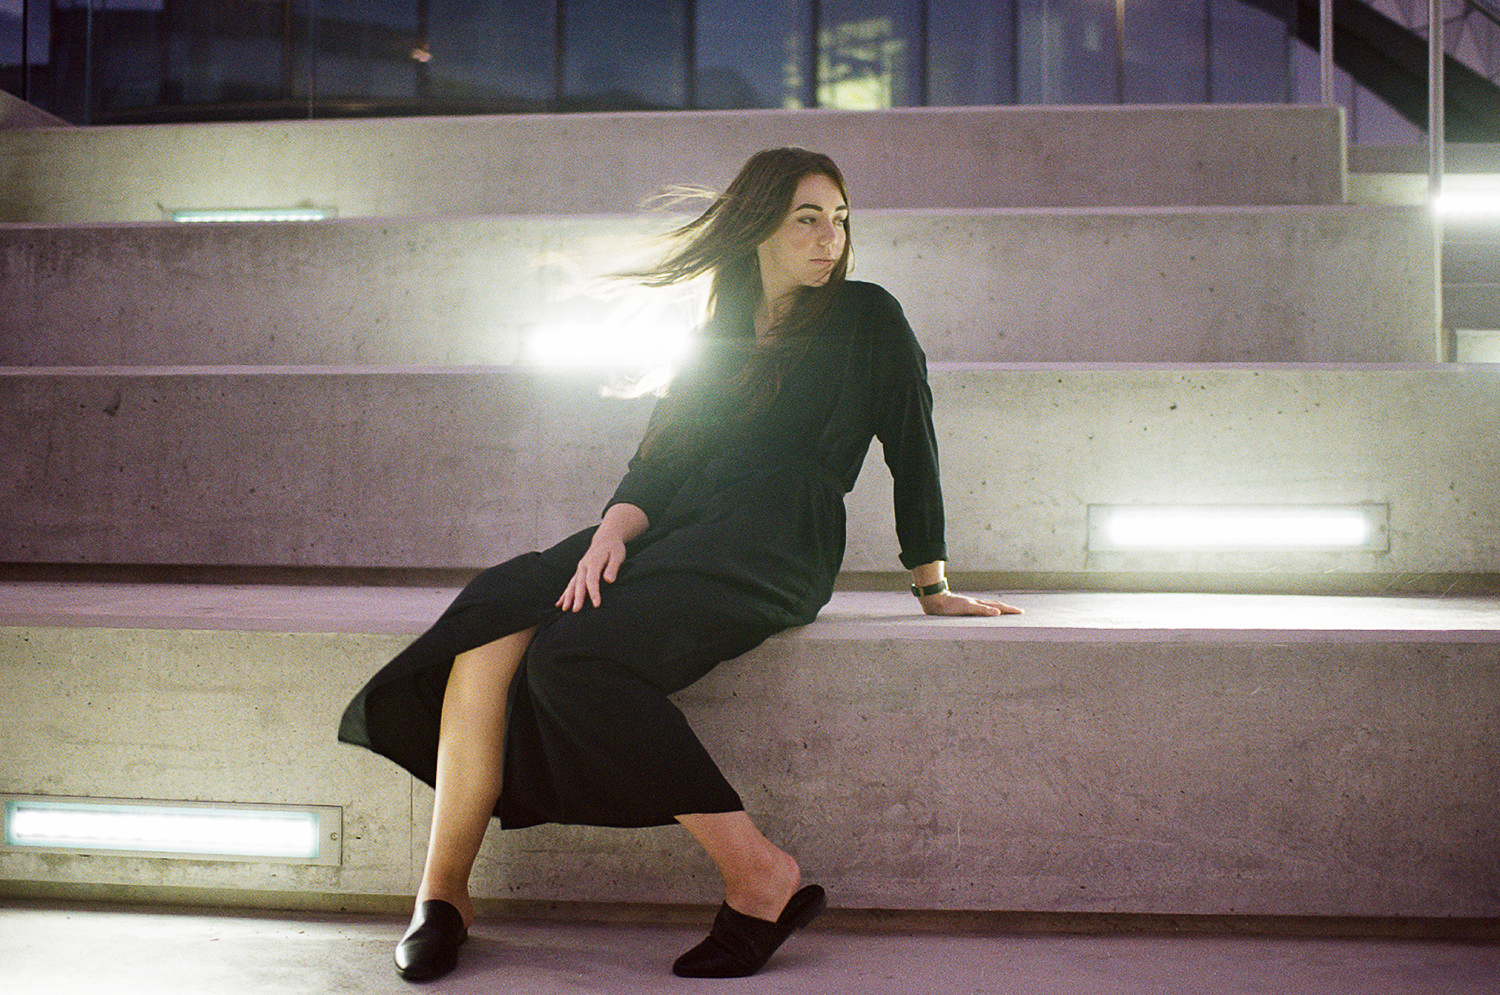 103-Watchit!-and-Oak-+-Fort-Photoshoot-Evening-Fashion-Outtake-35mm-Kodak-Gold-200-Portrait-Windy-dramatic.JPG